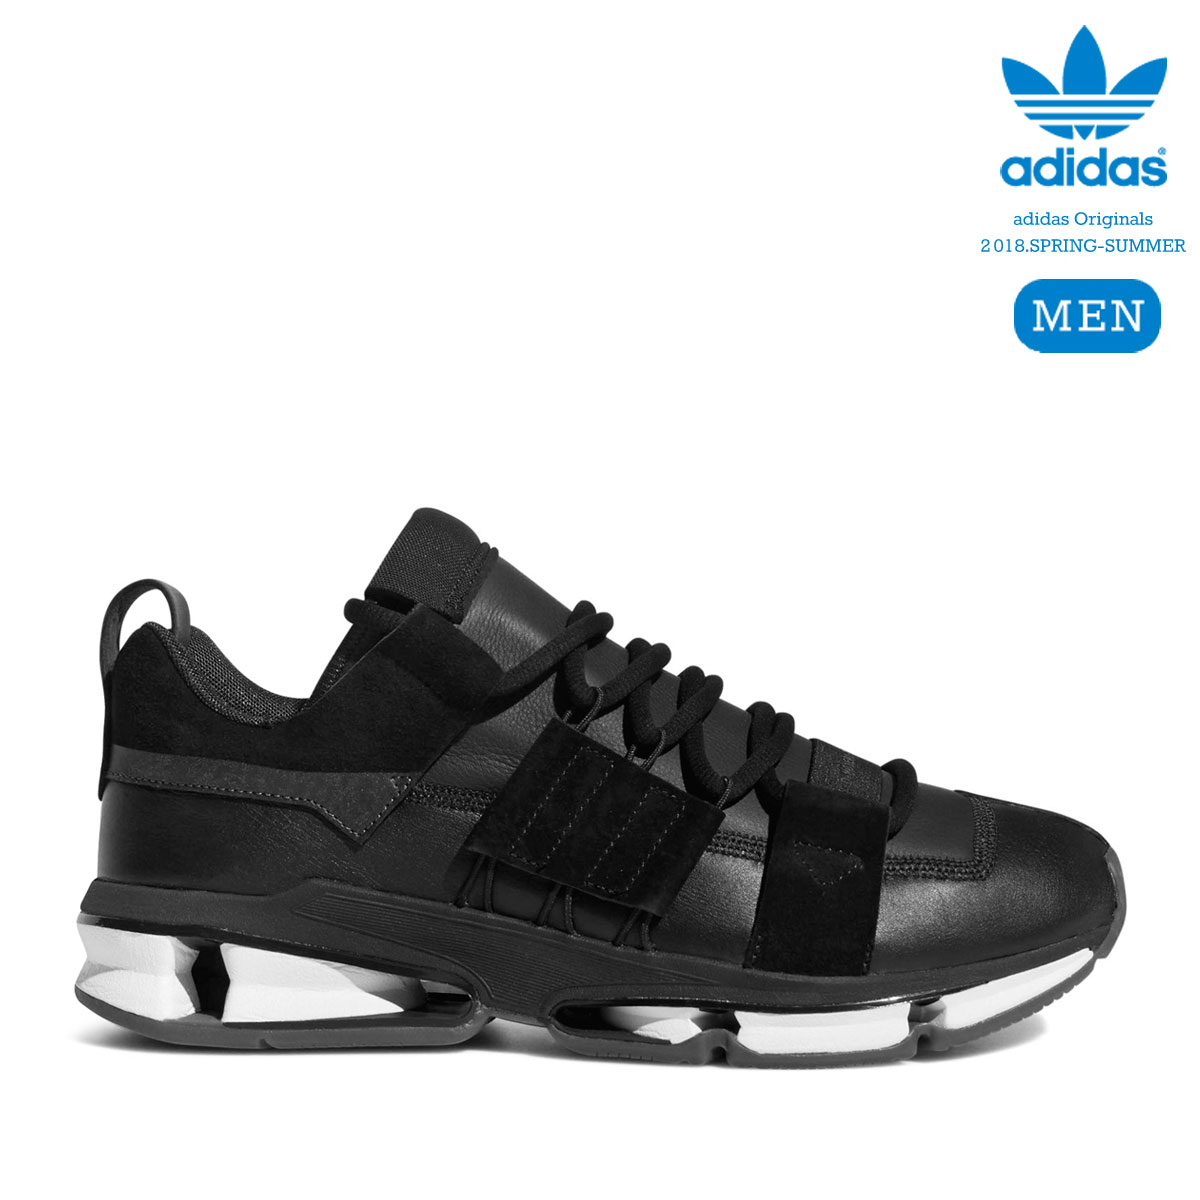 adidas Originals TWINSTRIKE ADV STRETCH LEATHER (Core Black/Running White/Core Black) 【メンズサイズ】【18SS-I】